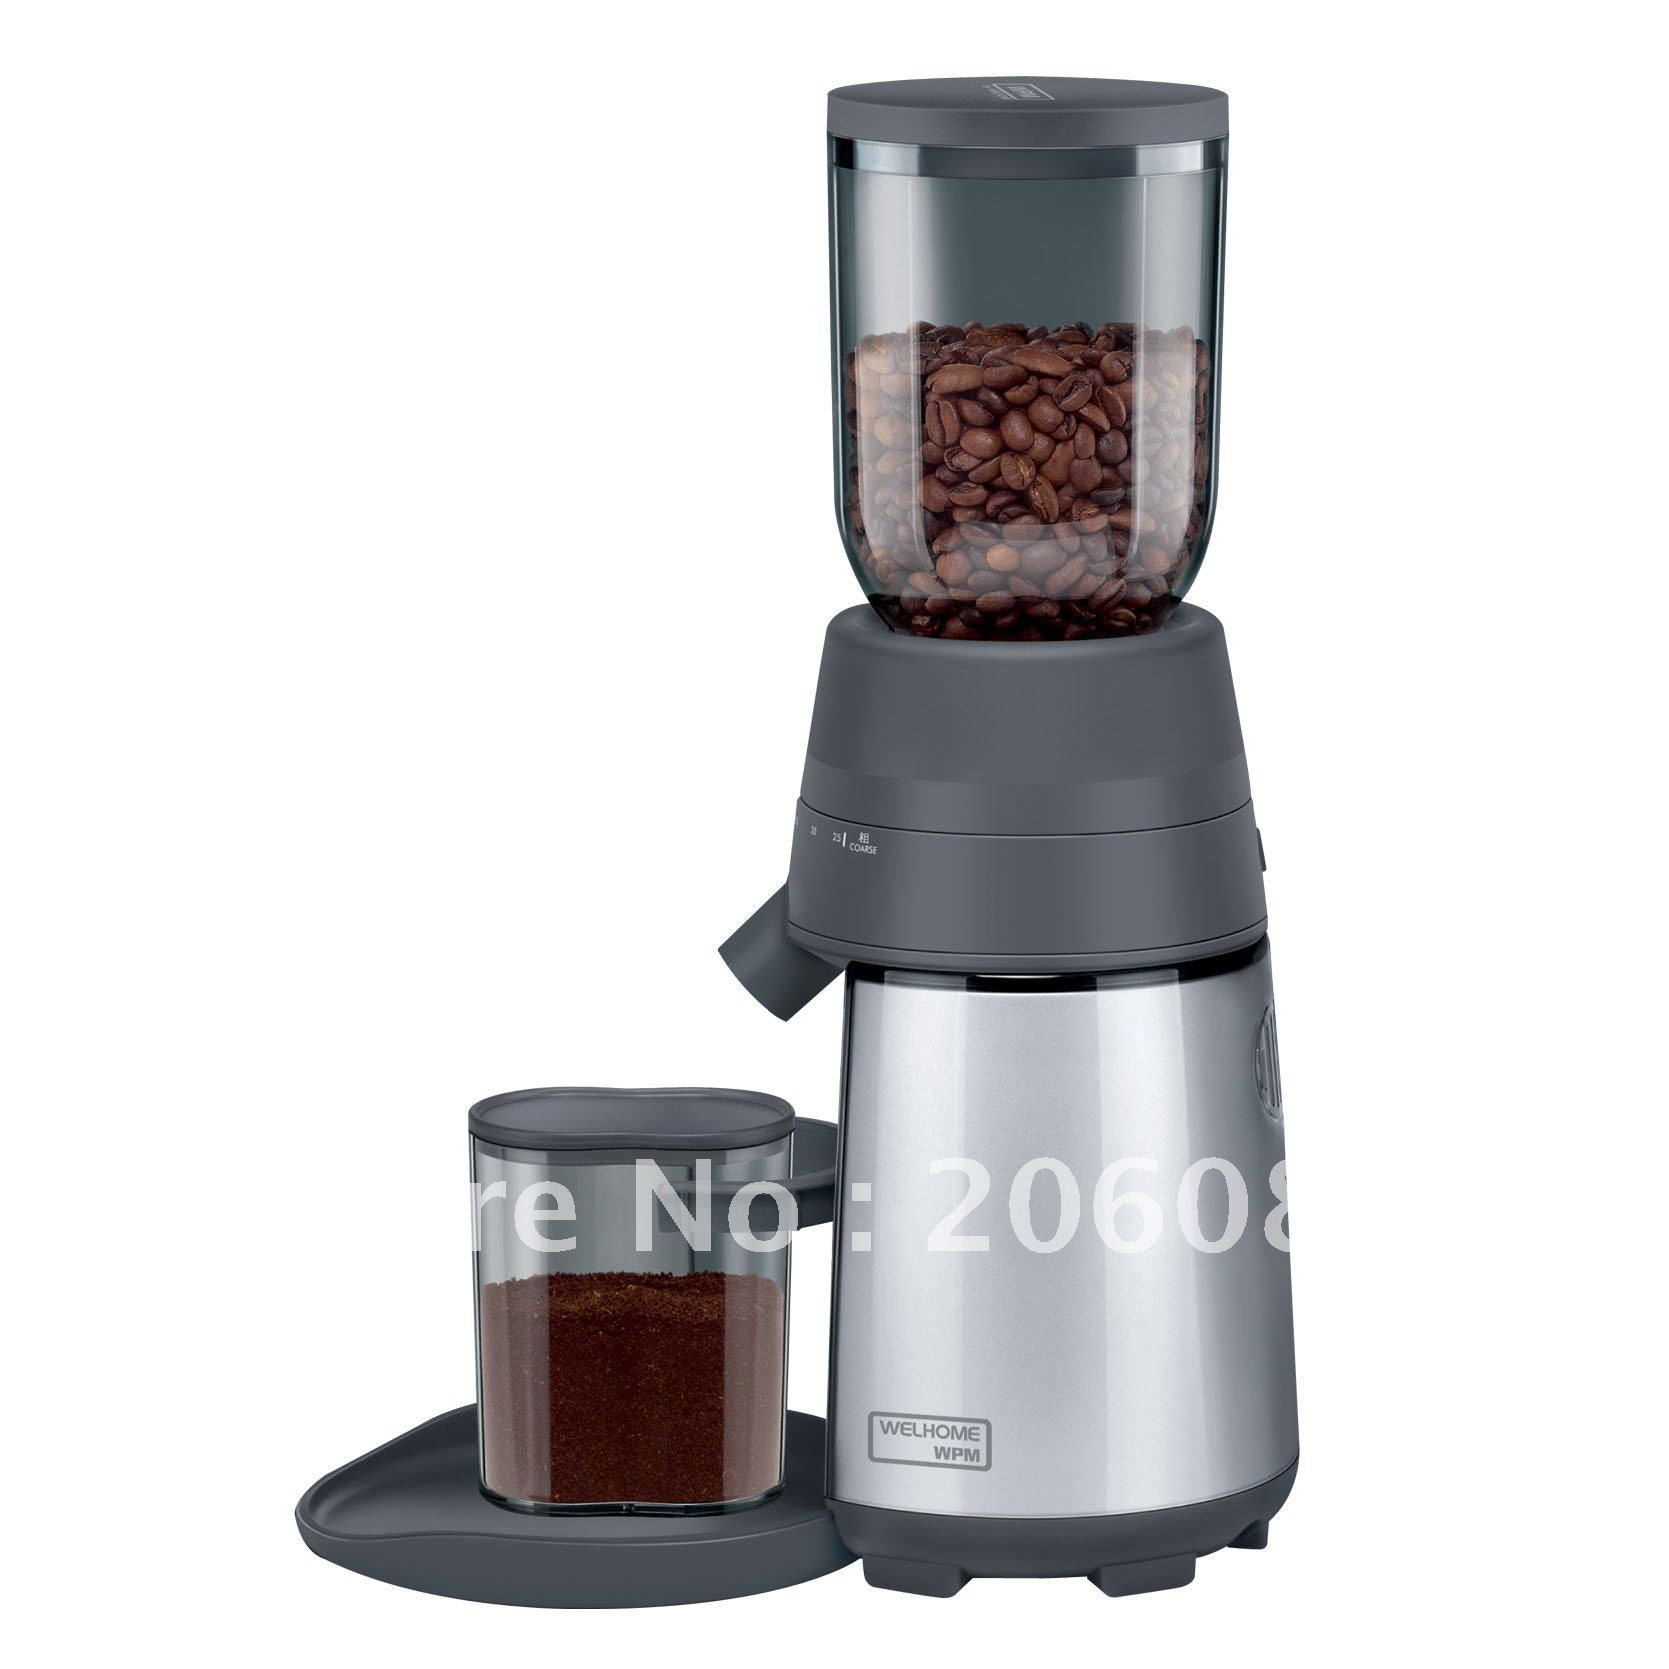 Home cafe grinder/Conical burr coffee grinder(competitve price and elegant design,factory directly sale,Reliable product) g520 one pound commercial coffee for sale electric burr grinders machine infinity conical burr grinder